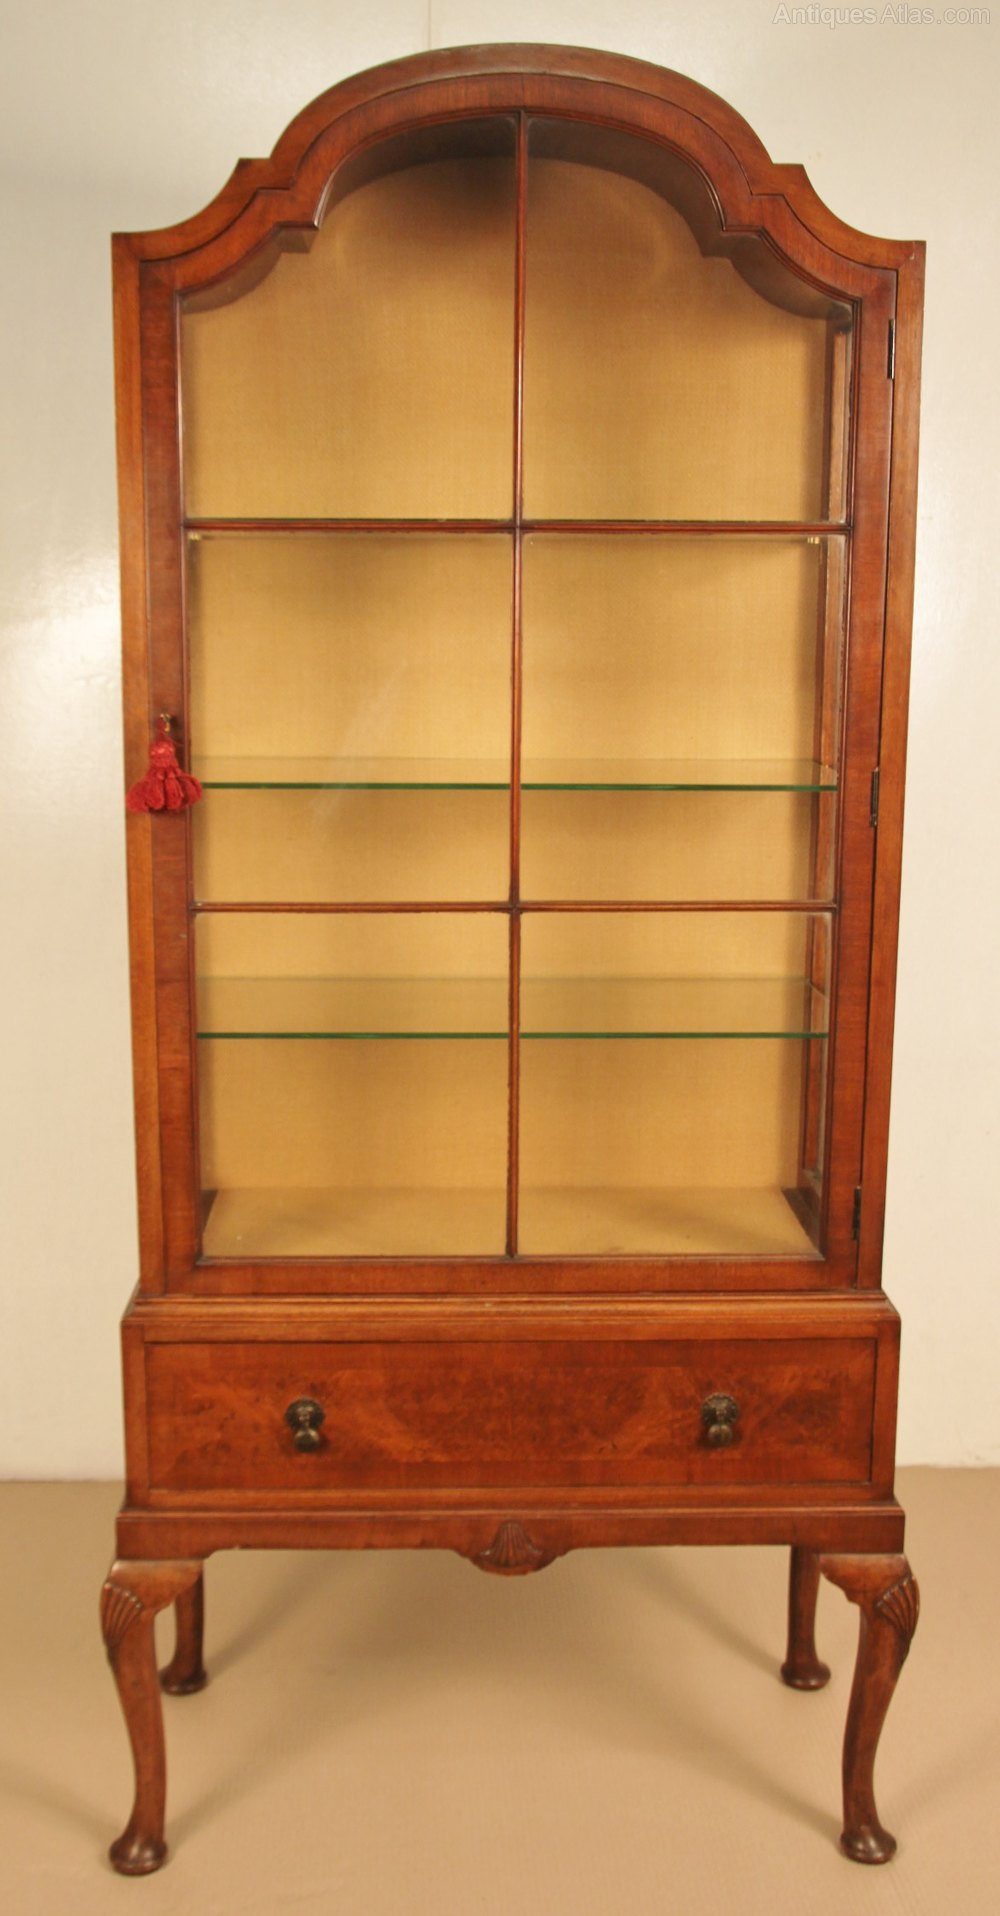 Queen anne style burr walnut display cabinet antiques atlas for Antique display cabinet